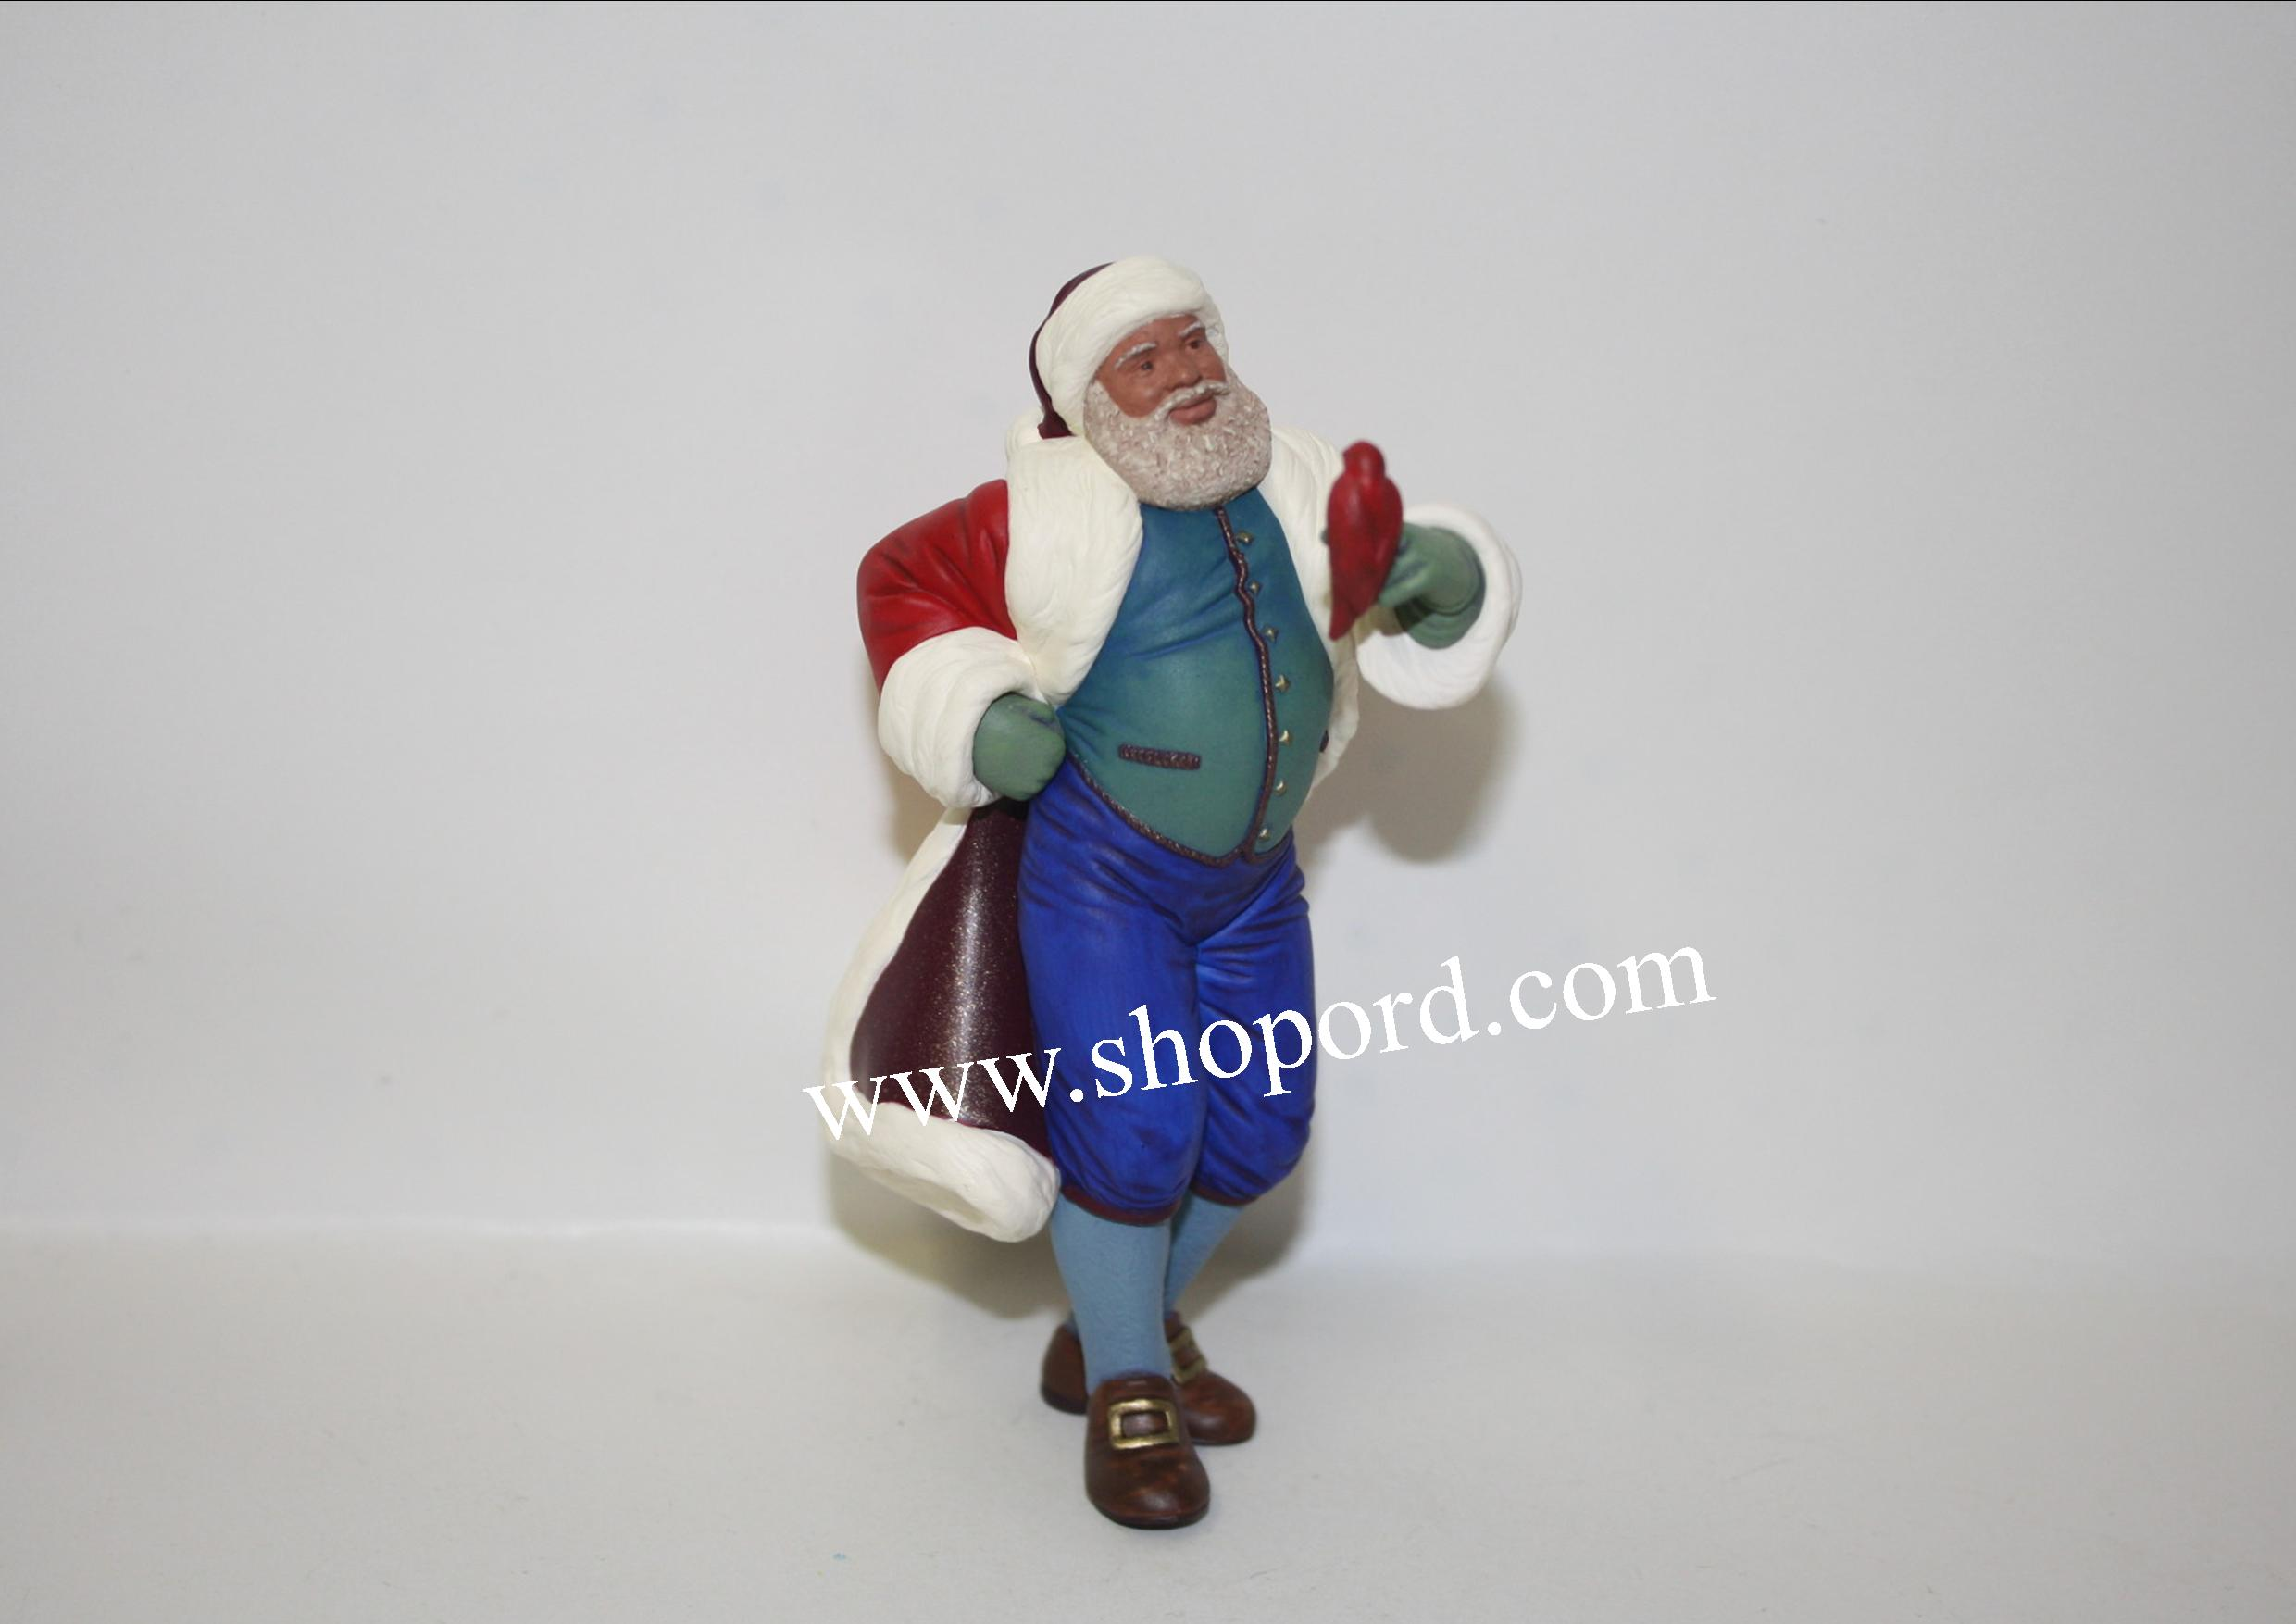 Hallmark 2000 Joyful Santa Ornament 2nd In The Series QX6784